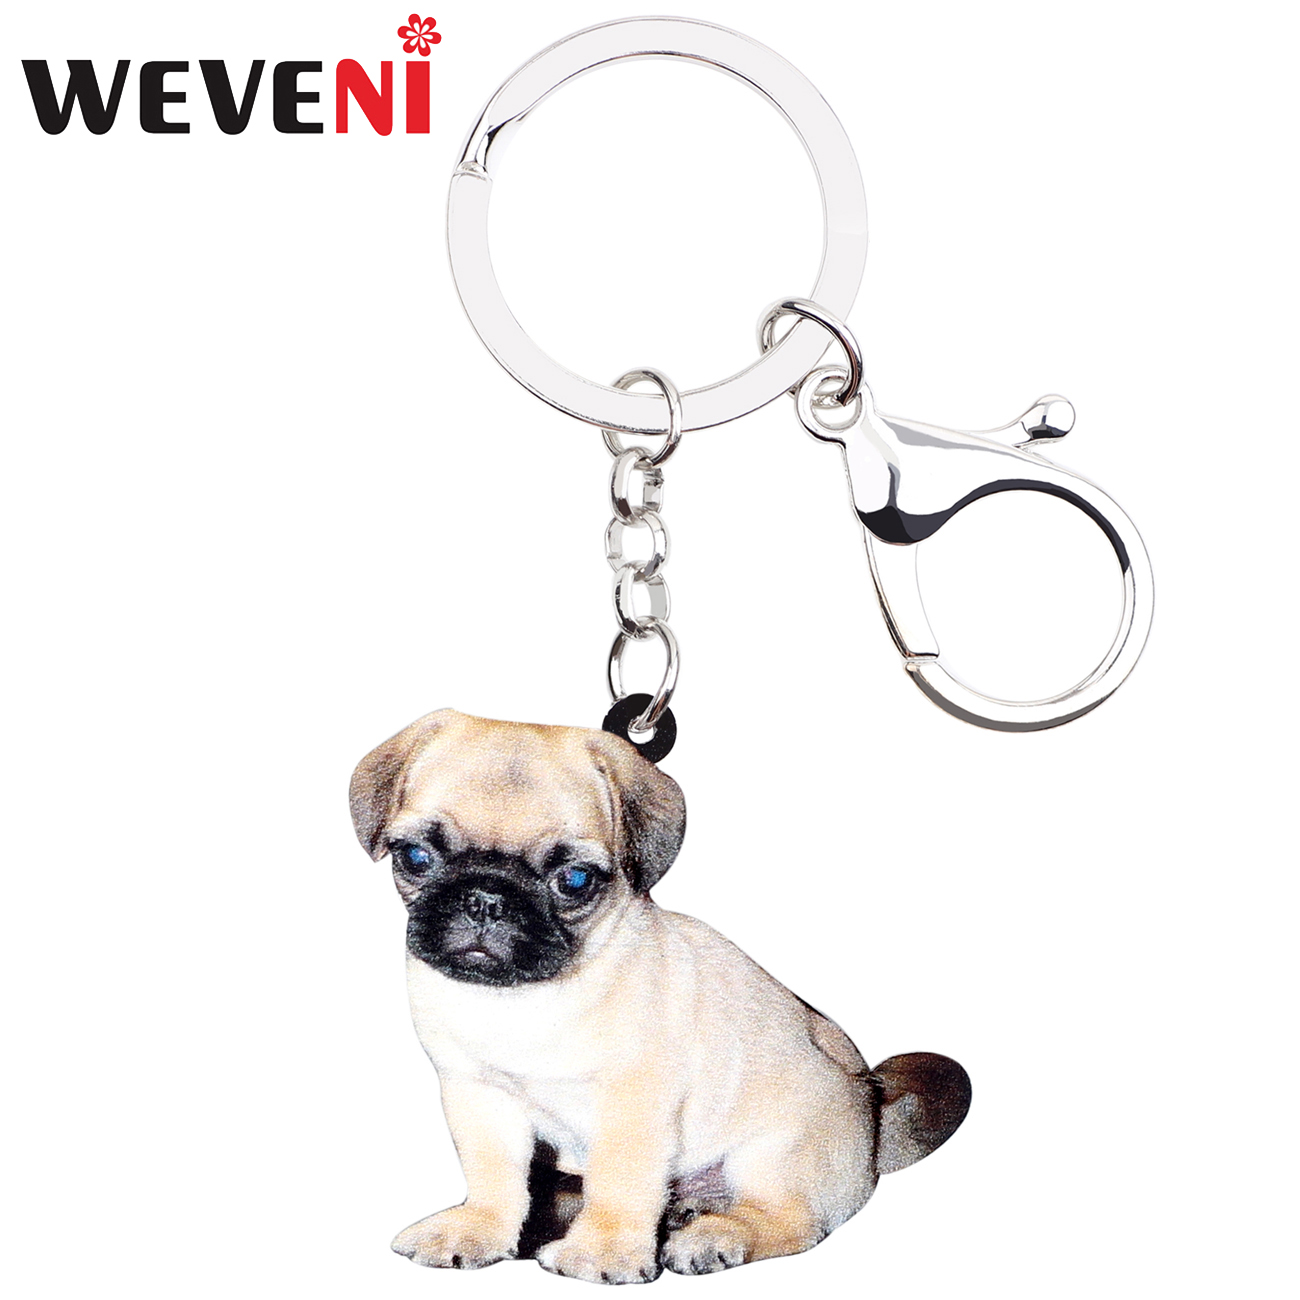 WEVENI Acrylic Pug Dog Key Chains Keychains Holder Cute Animal Jewelry For Women Girls Pet Lovers Bag Car Charms Accessories New